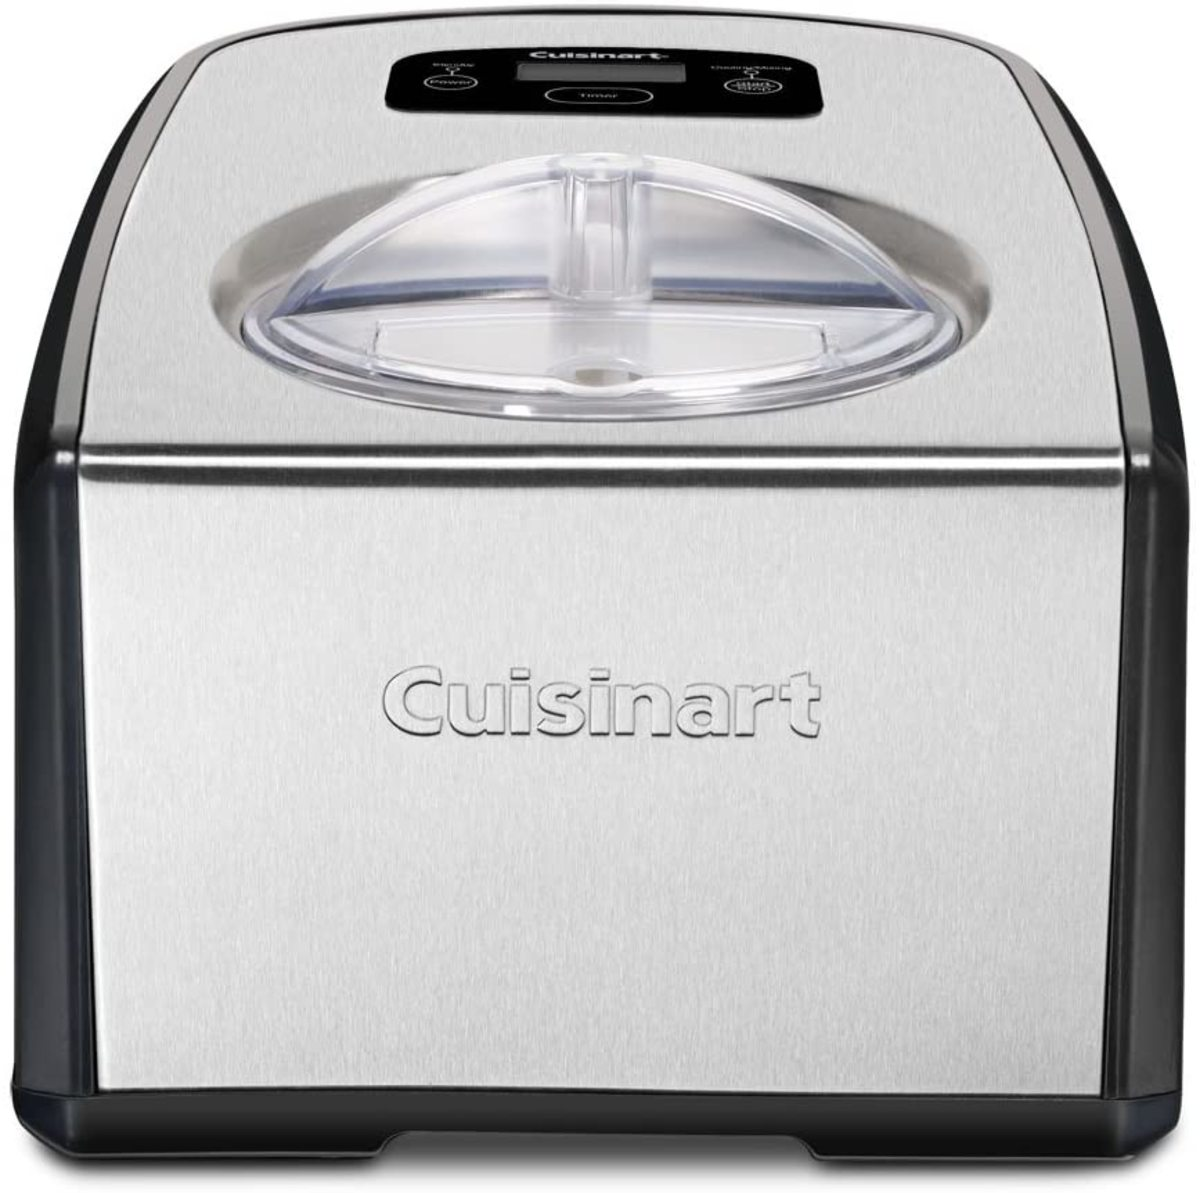 The Cuisinart ICE-100 Compressor Ice Cream and Gelato Maker.